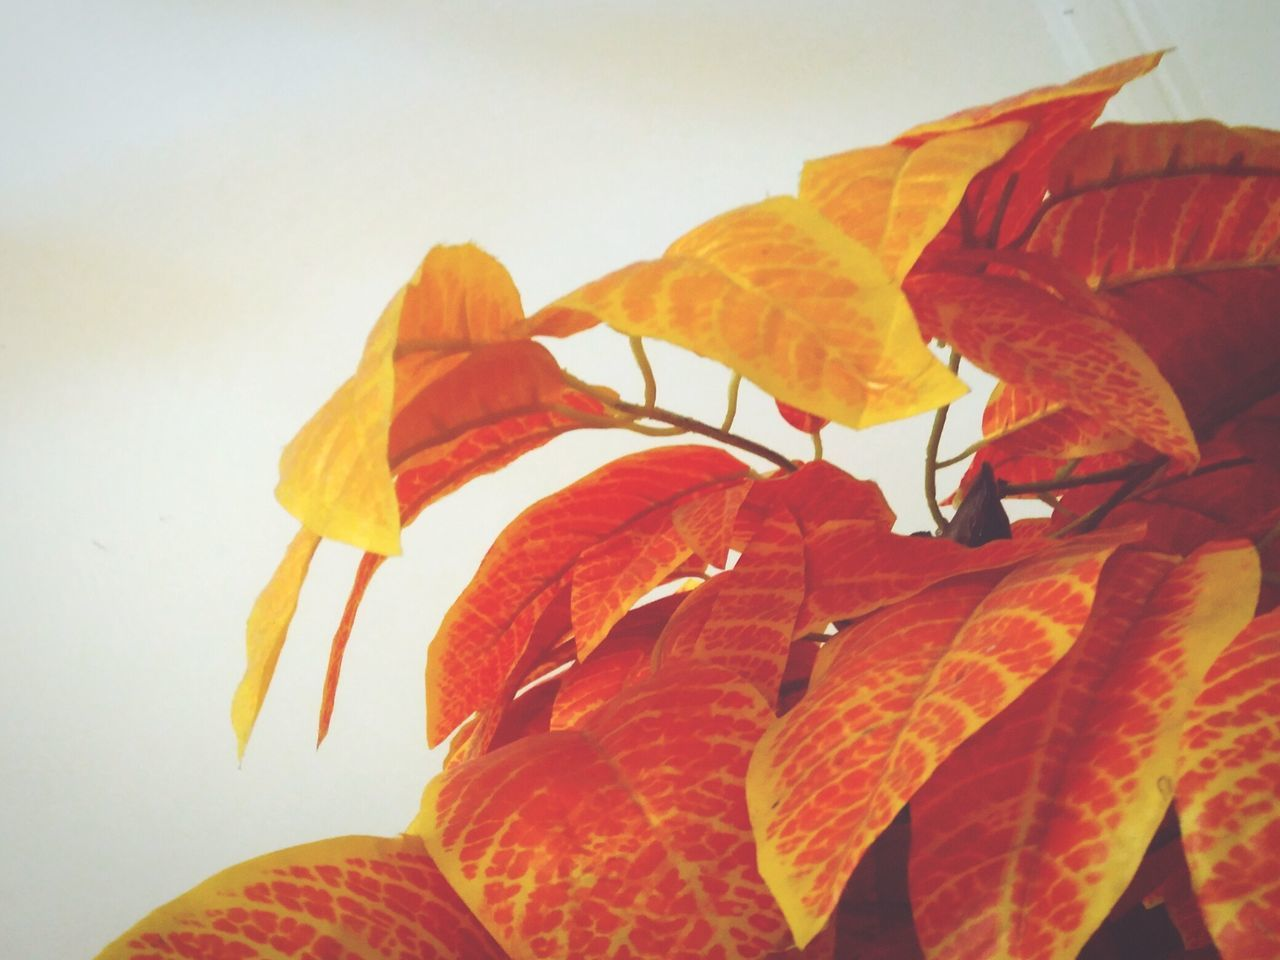 leaf, orange color, autumn, day, no people, nature, beauty in nature, outdoors, close-up, clear sky, sky